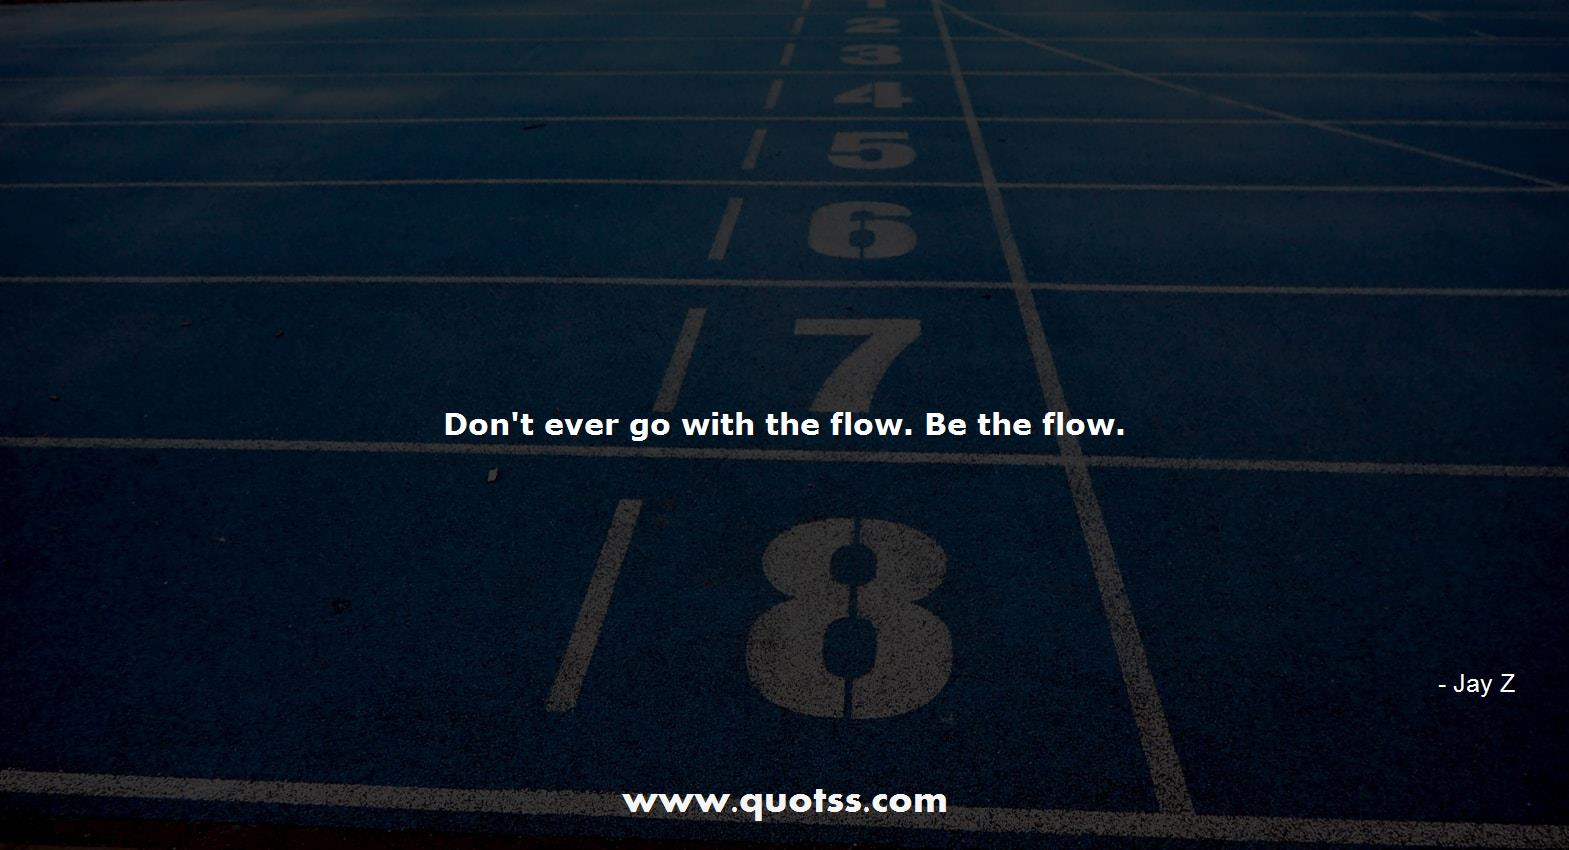 Dont Ever Go With The Flow Be The Flow Jay Z Jay Z Quotes